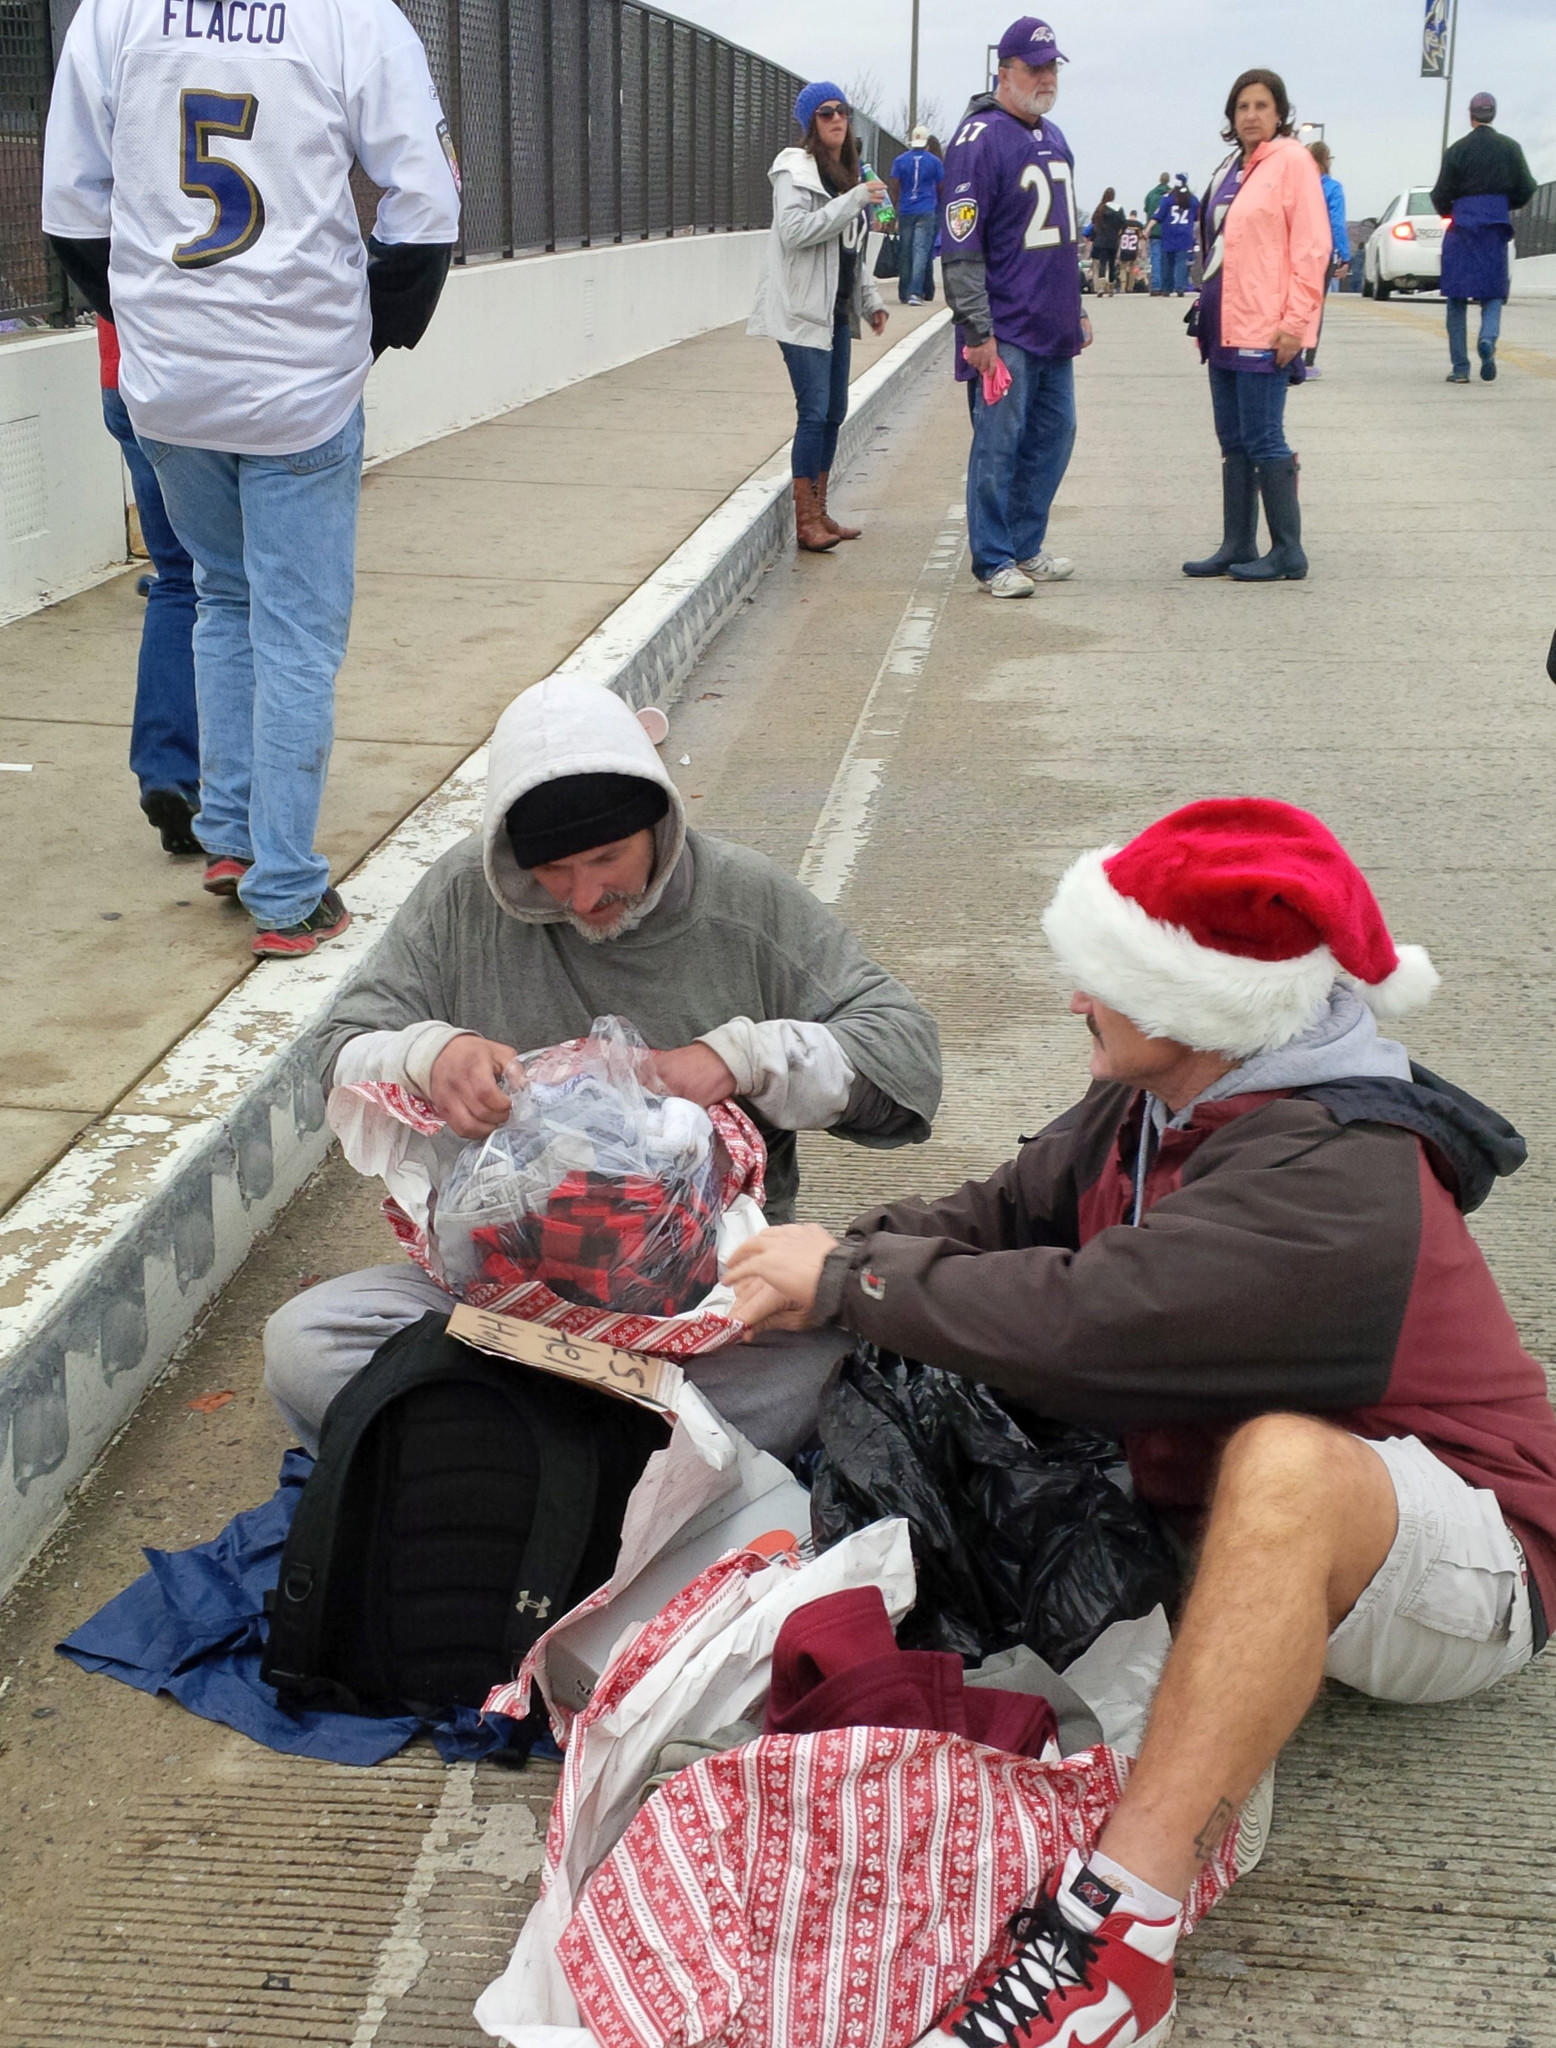 Jimmy Scaletta sits in the middle of the eastbound lane of the Hamburg Street Bridge with his cup and cardboard sign facing the incoming fans, hoping for handouts. On Sunday, Ravens fan Drew Haugh stopped by with a bag of gifts, celebrating Christmas with Scaletta on the morning of the Ravens-Patriots game.